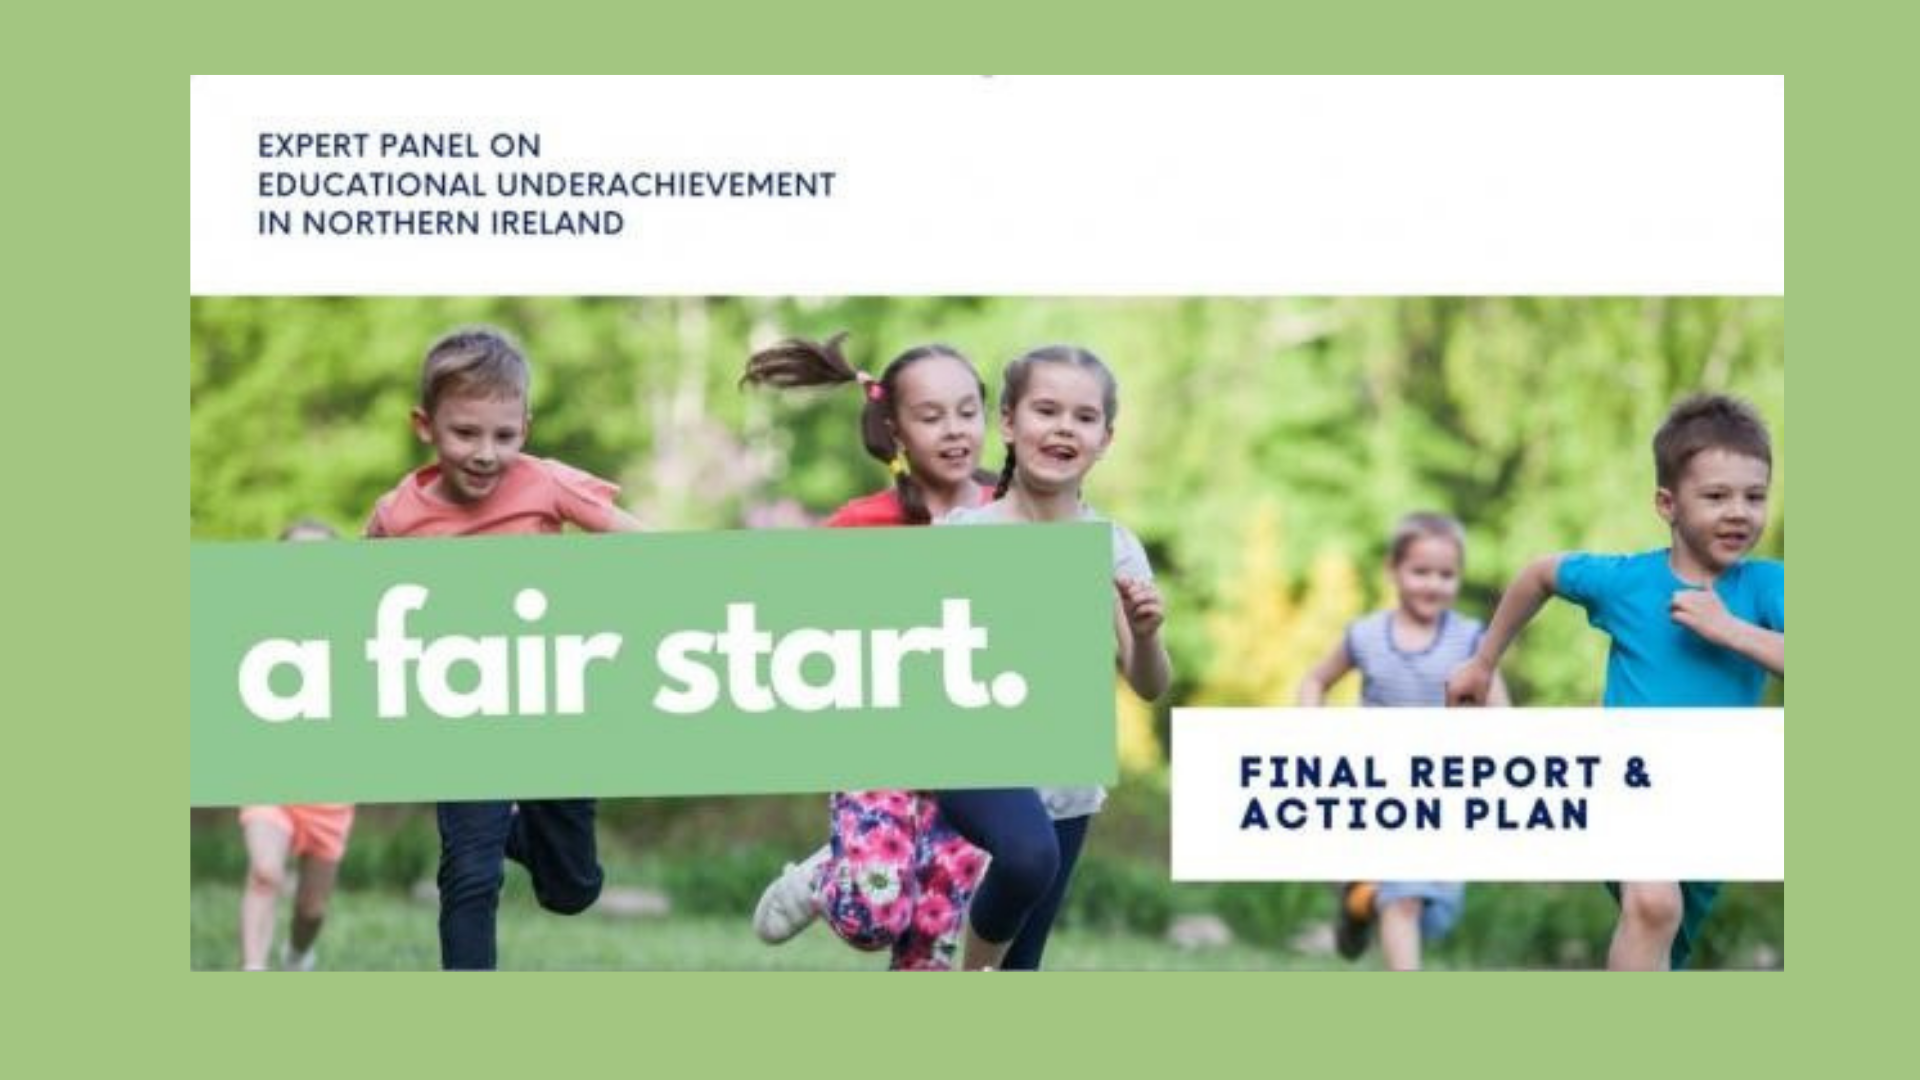 New report identifies Early Years as a key priority area to address educational underachievement